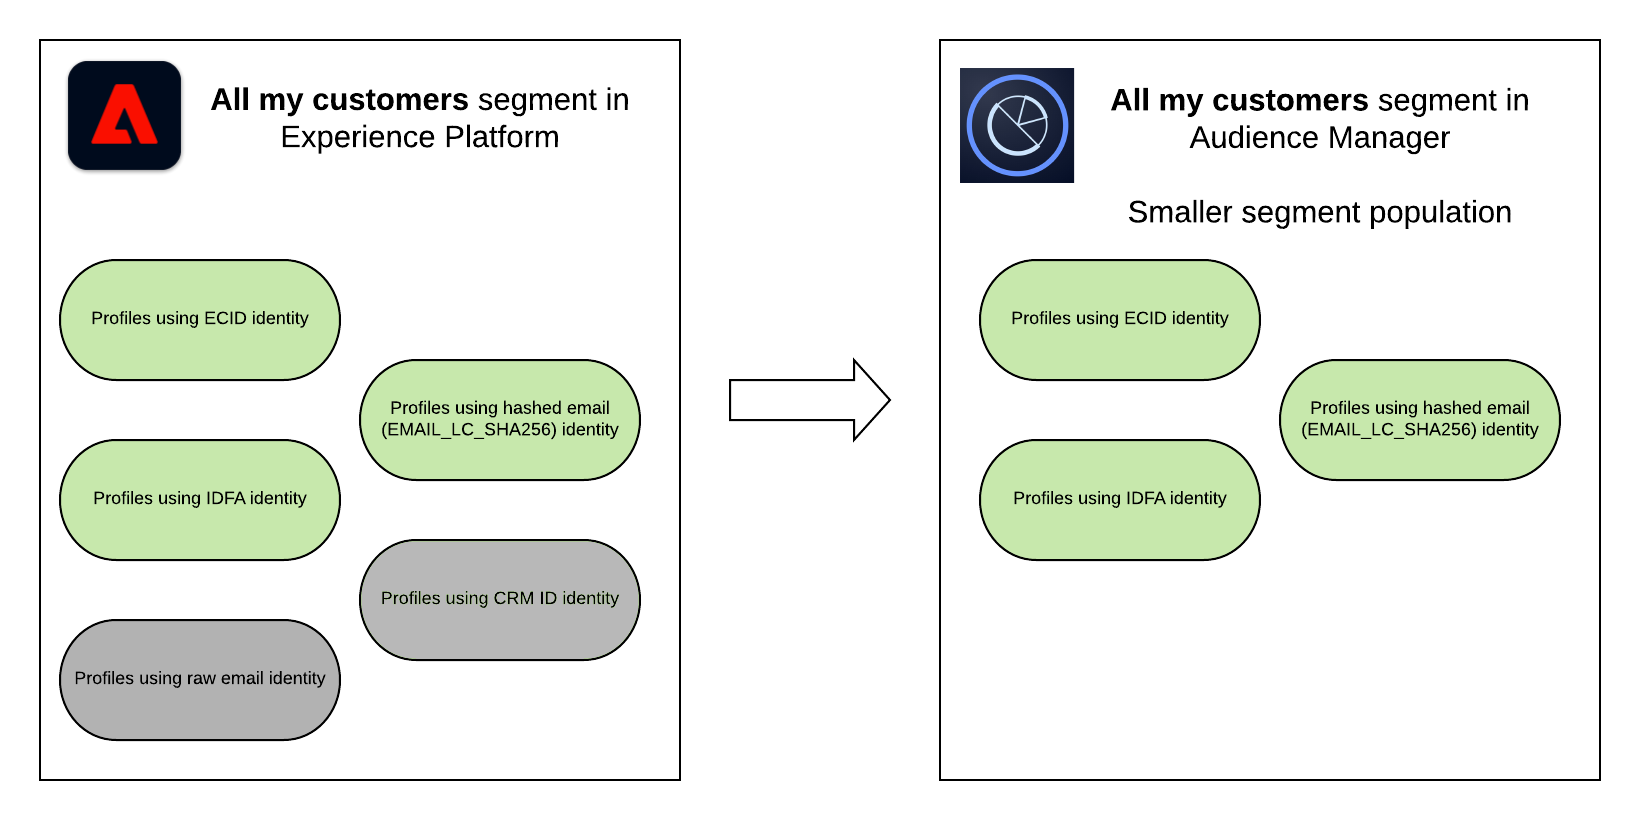 Experience Platform to Audience Manager segment sharing - segment composition